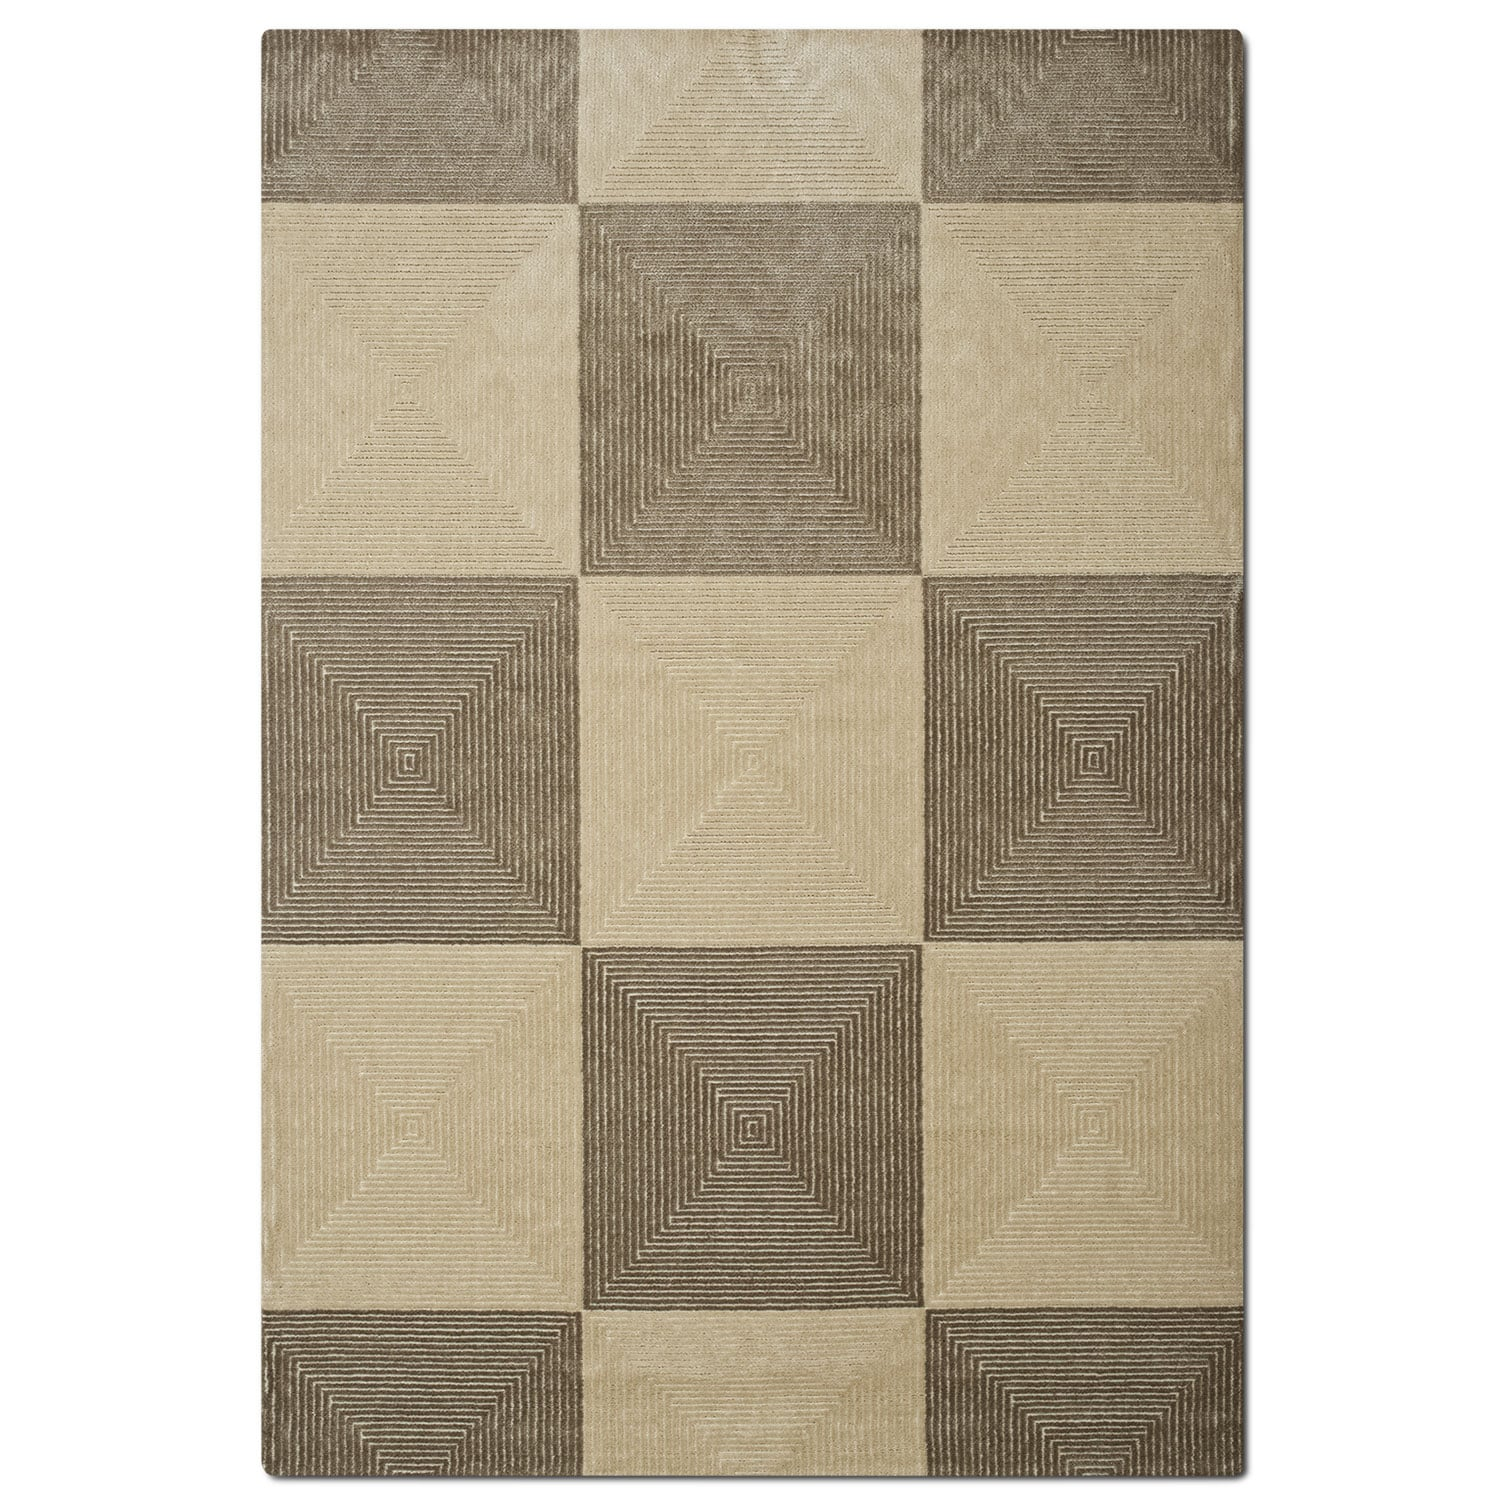 Metro 5' x 8' Area Rug - Grray and Charcoal